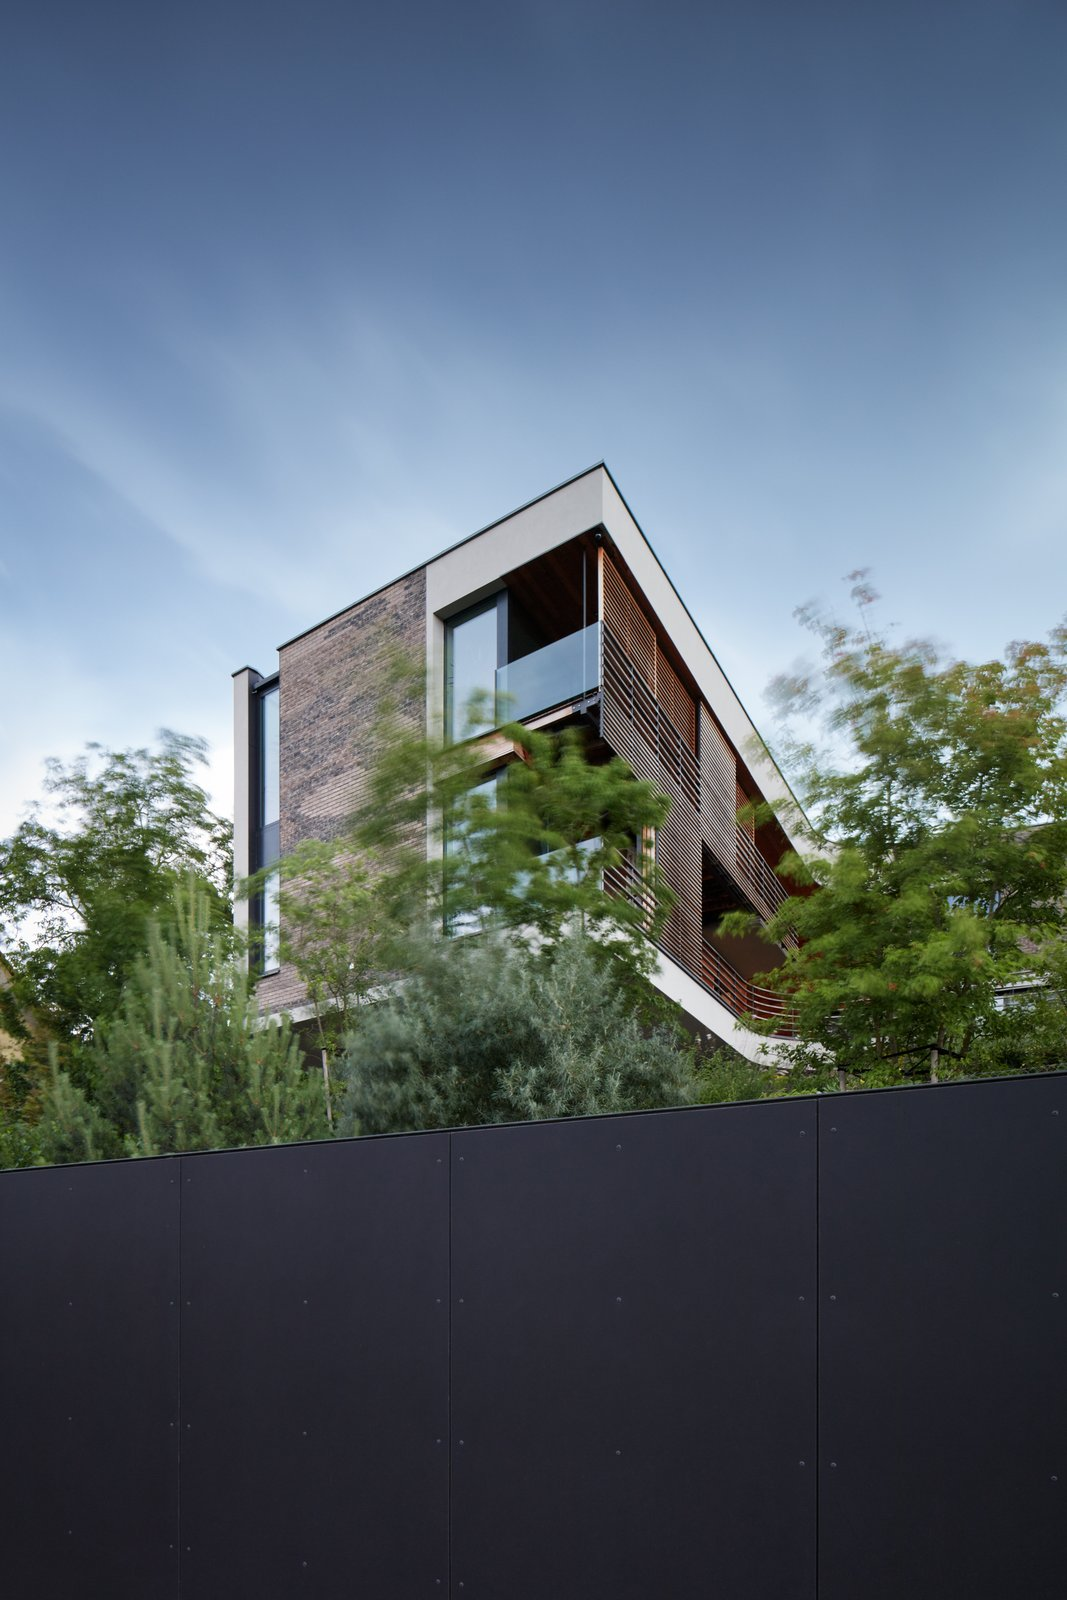 Tagged: Outdoor, Trees, and Metal Fences, Wall.  Villa H by BoysPlayNice Photography & Concept